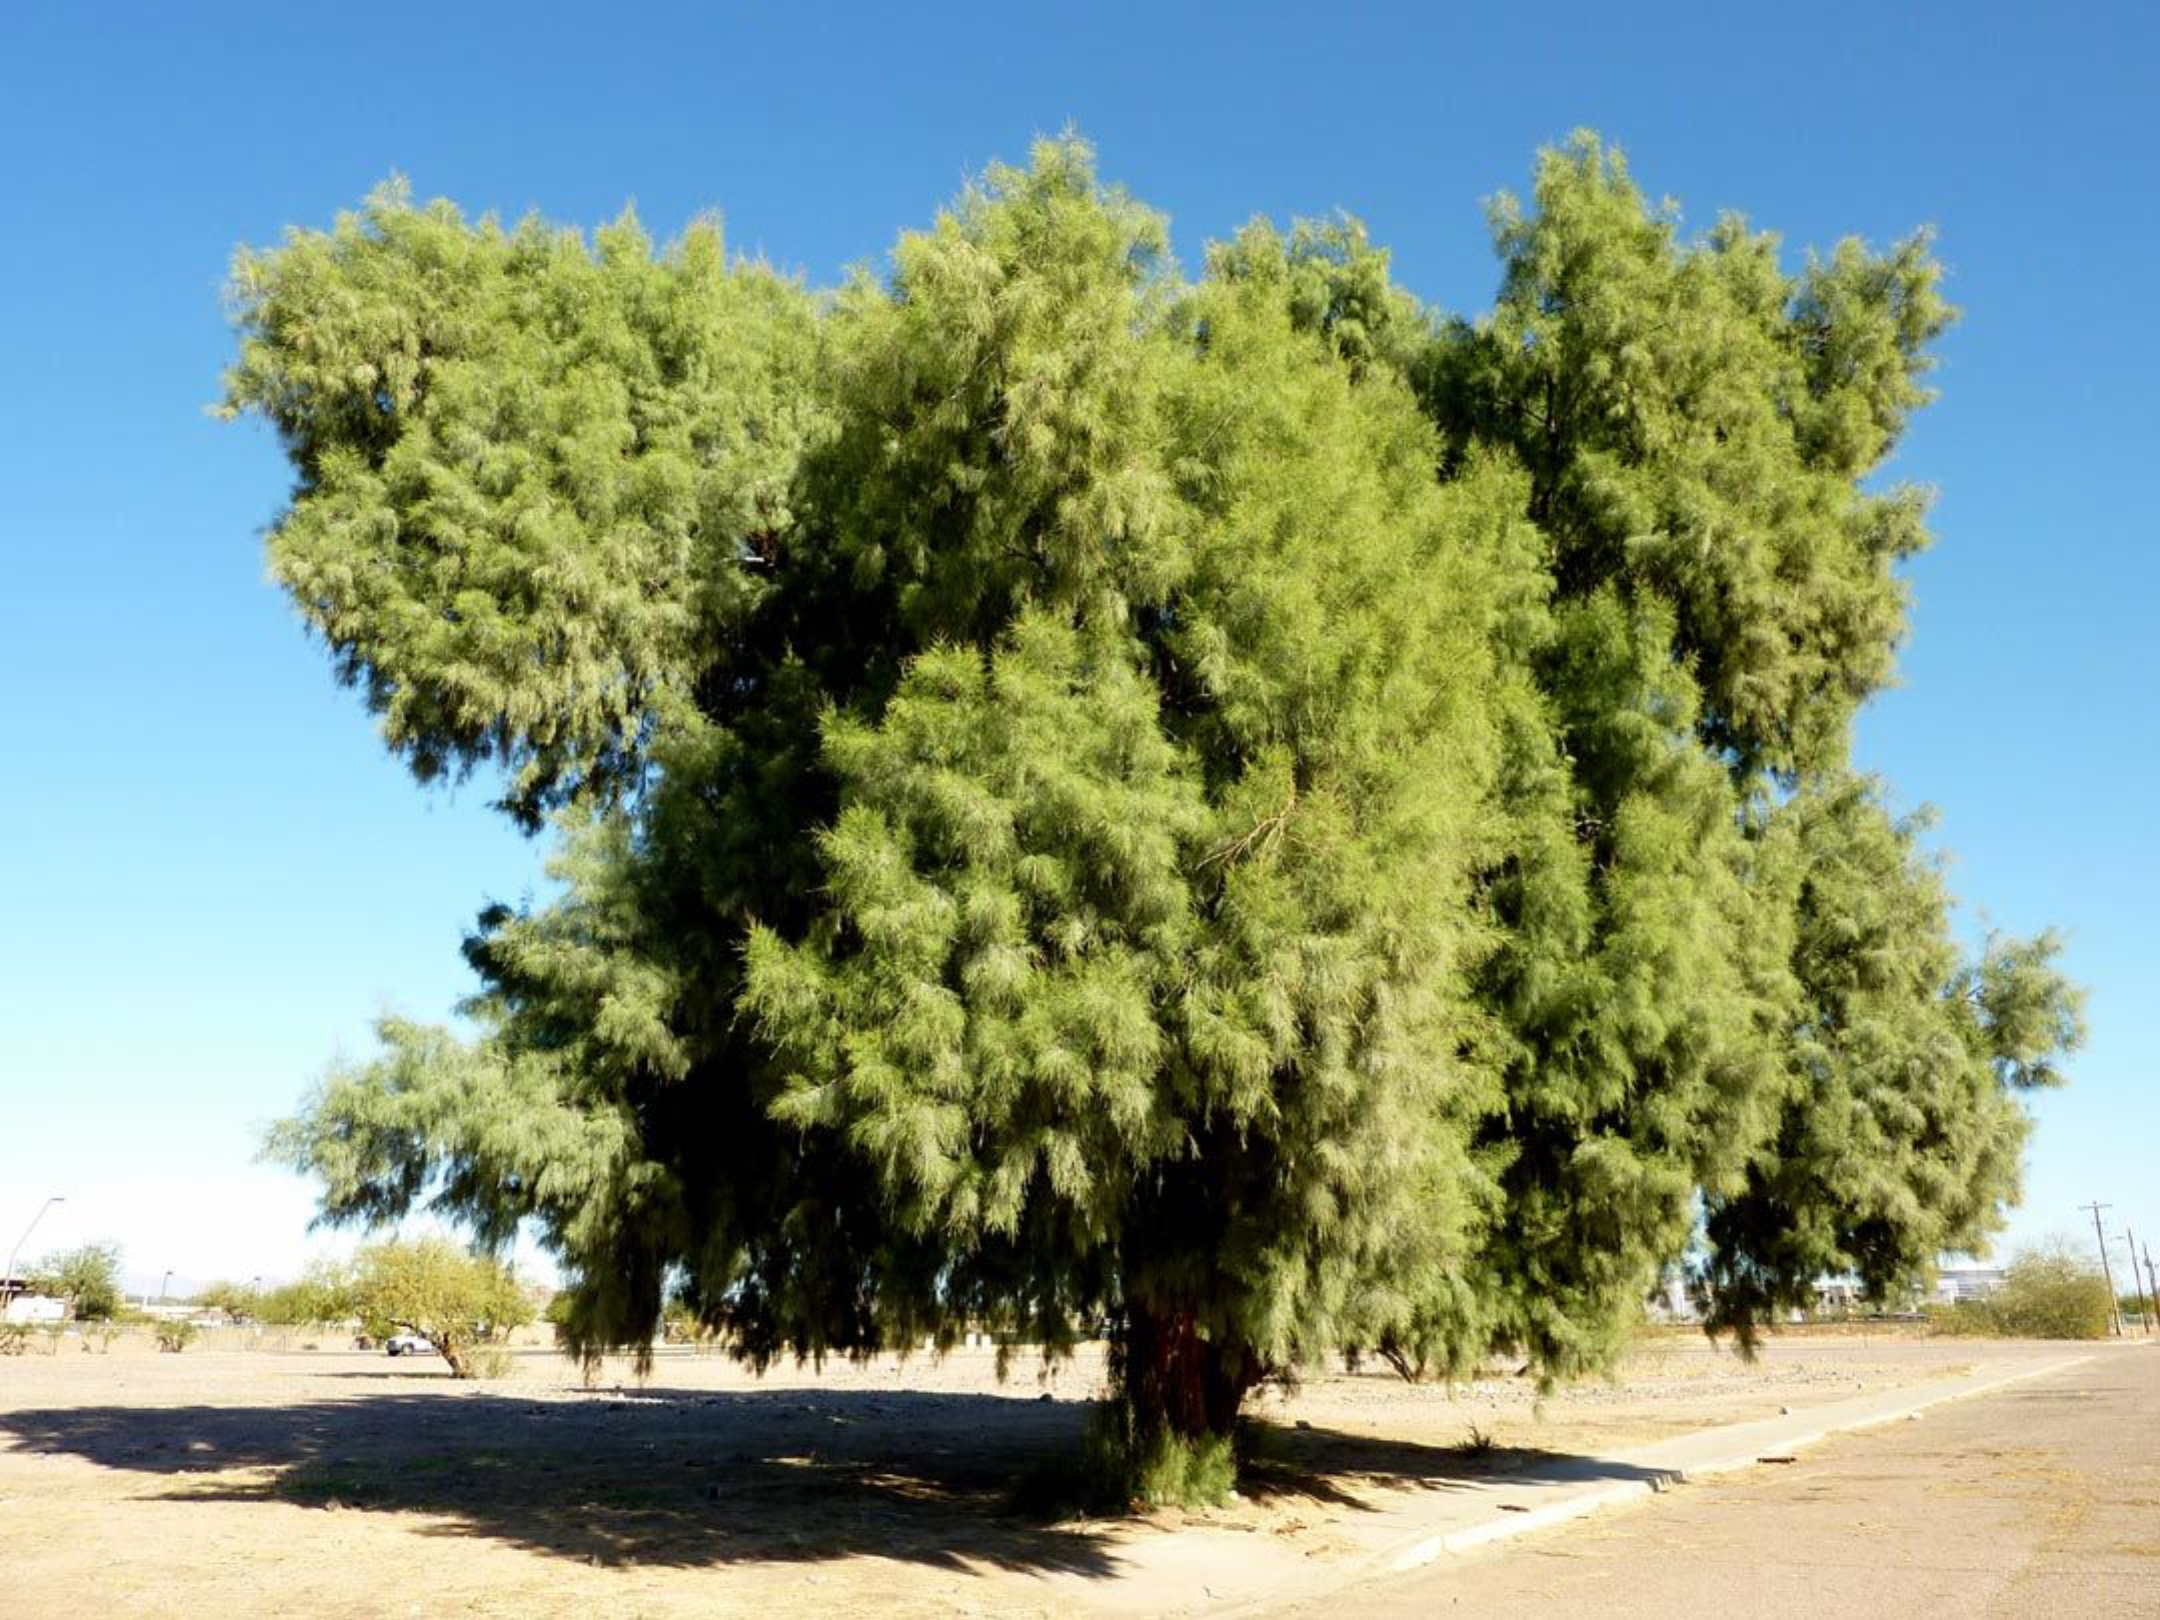 Genesis 21:33New King James Version (NKJV) 33 Then Abraham planted a tamarisk tree in Beersheba, and there called on the name of the Lord, the Everlasting God.